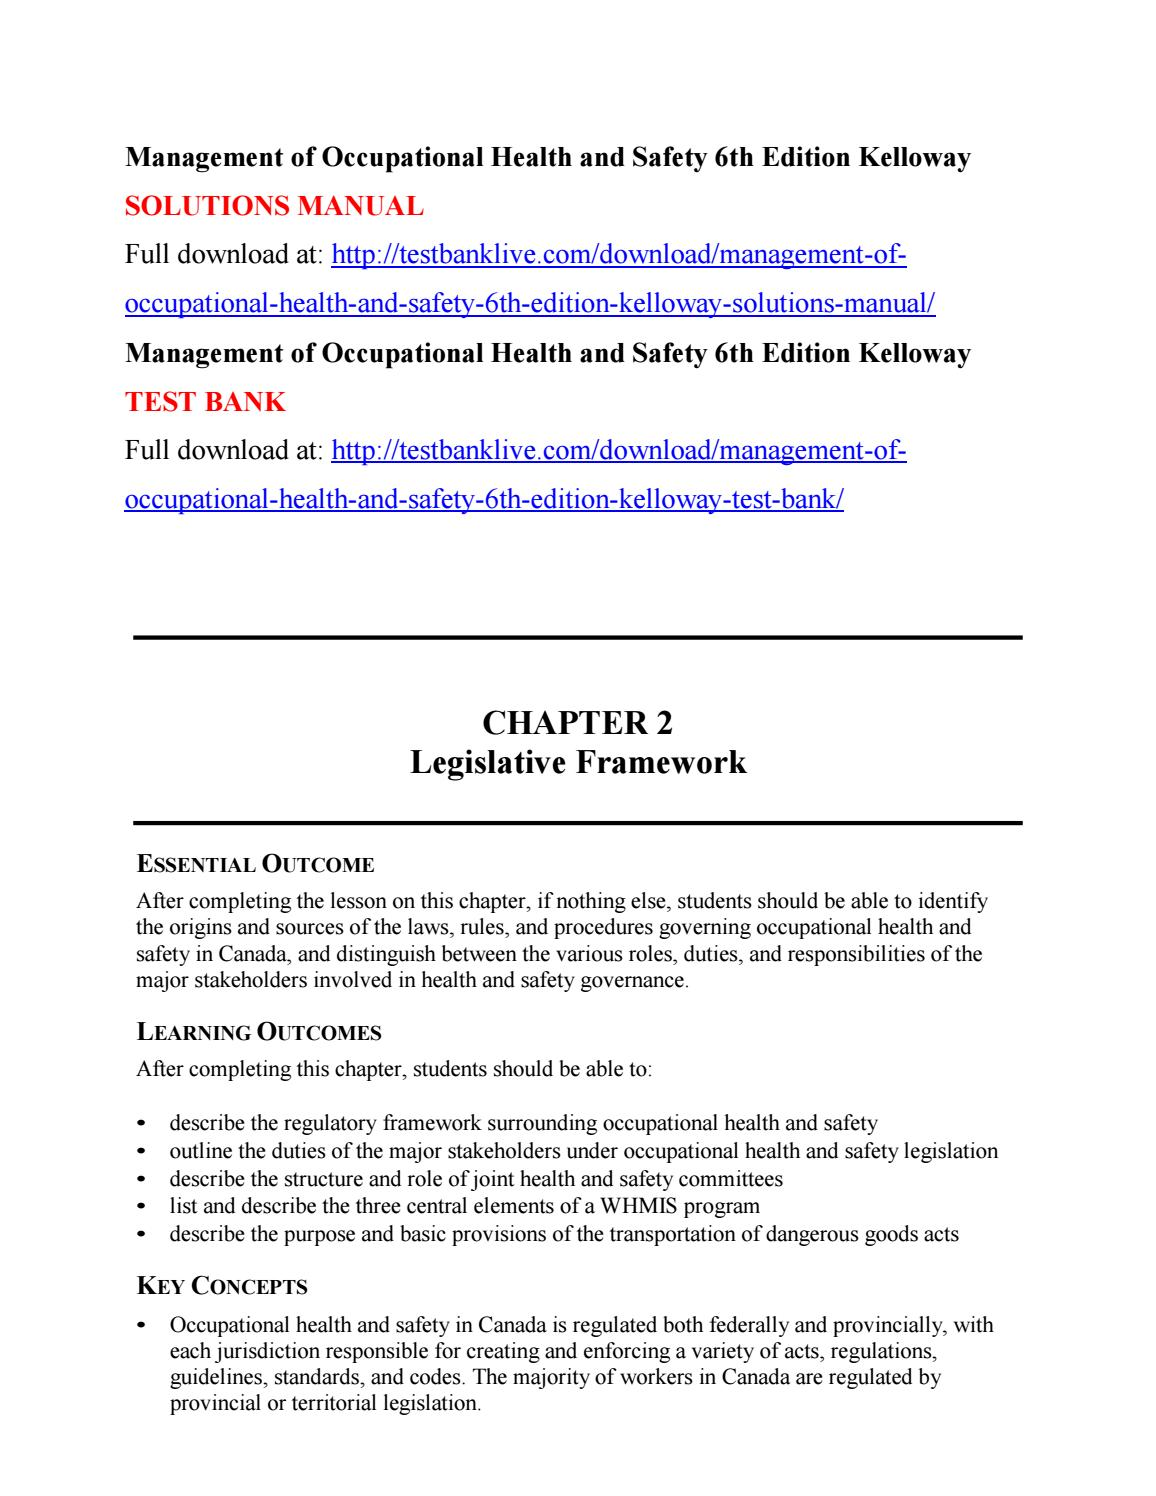 Management of occupational health and safety 6th edition kelloway solutions  manual by zaza111 - issuu